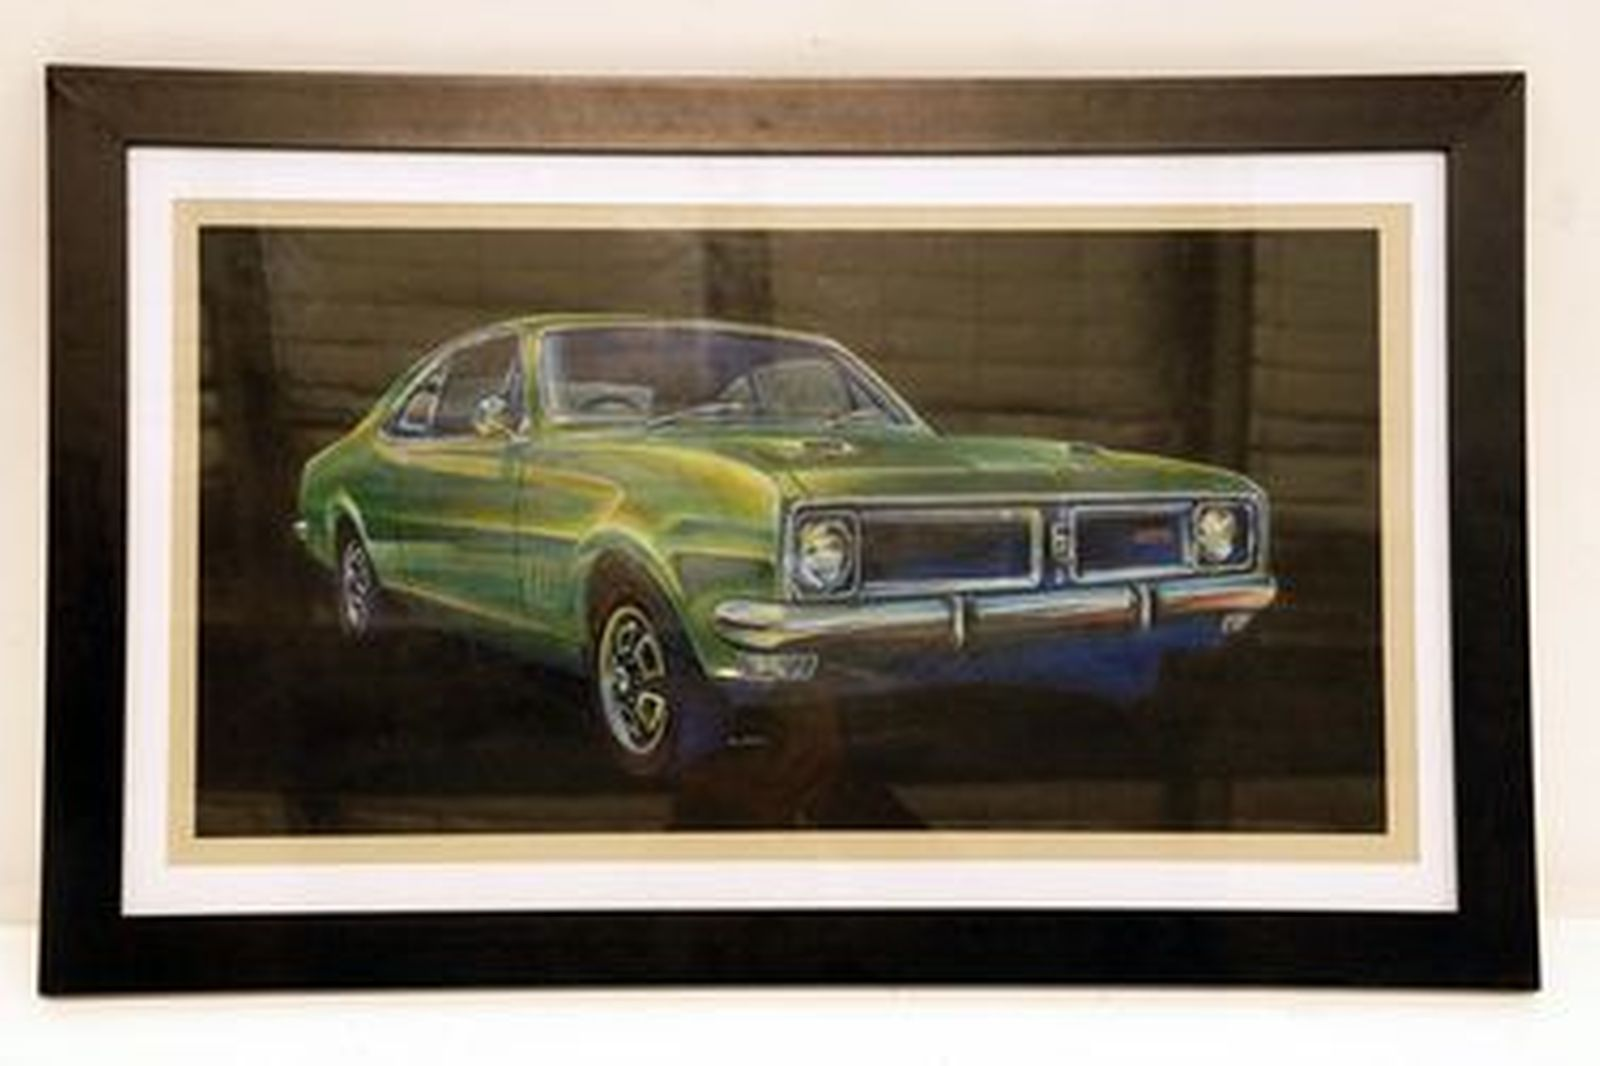 Framed Artwork - Holden HG Monaro Green Size A2